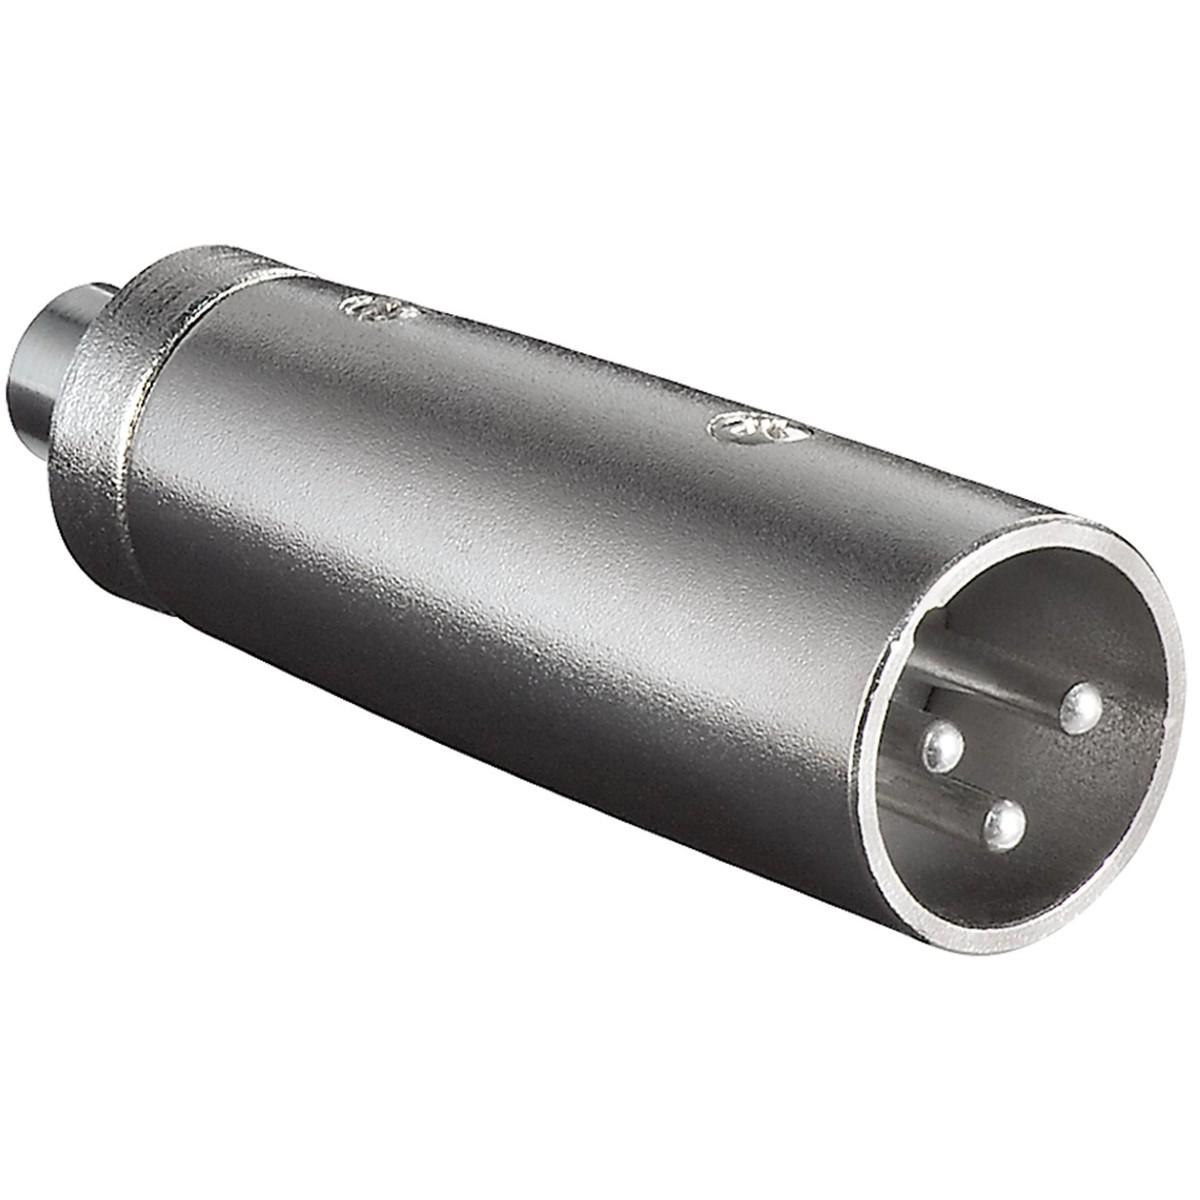 XLR - Tulp Verloop Connector 2: Tulp Female